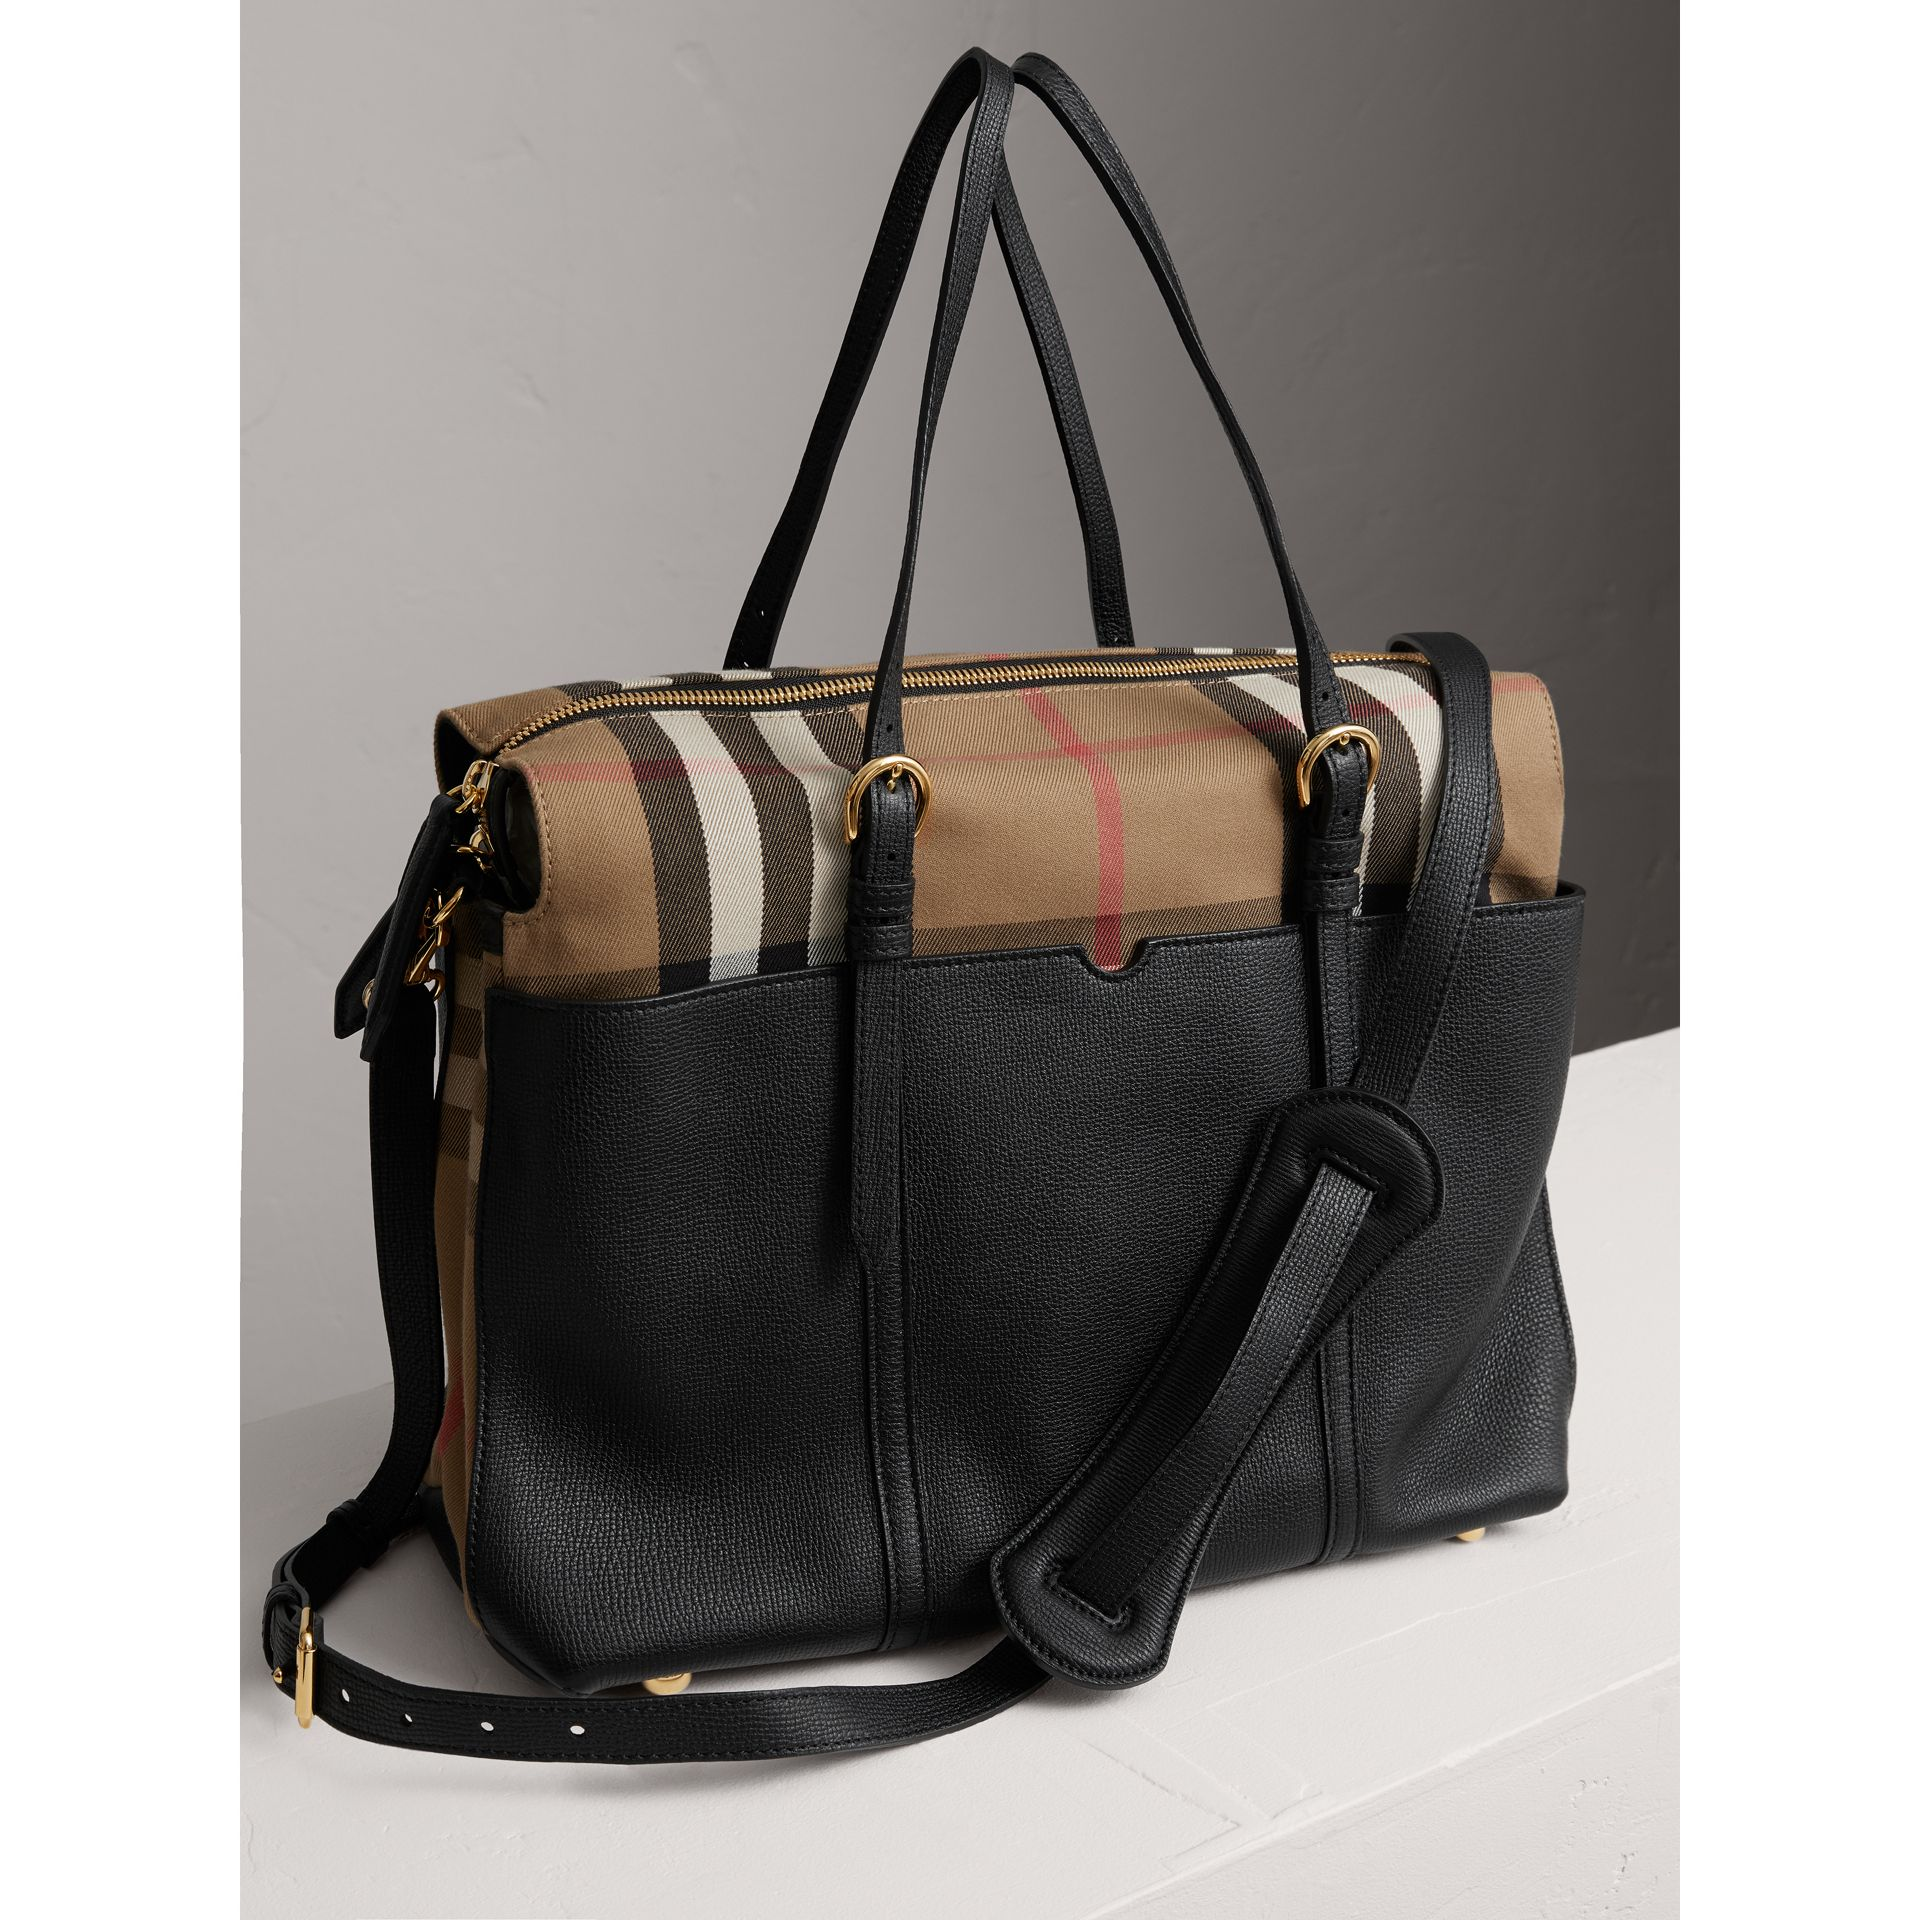 House Check and Leather Baby Changing Bag in Black | Burberry United Kingdom - gallery image 4